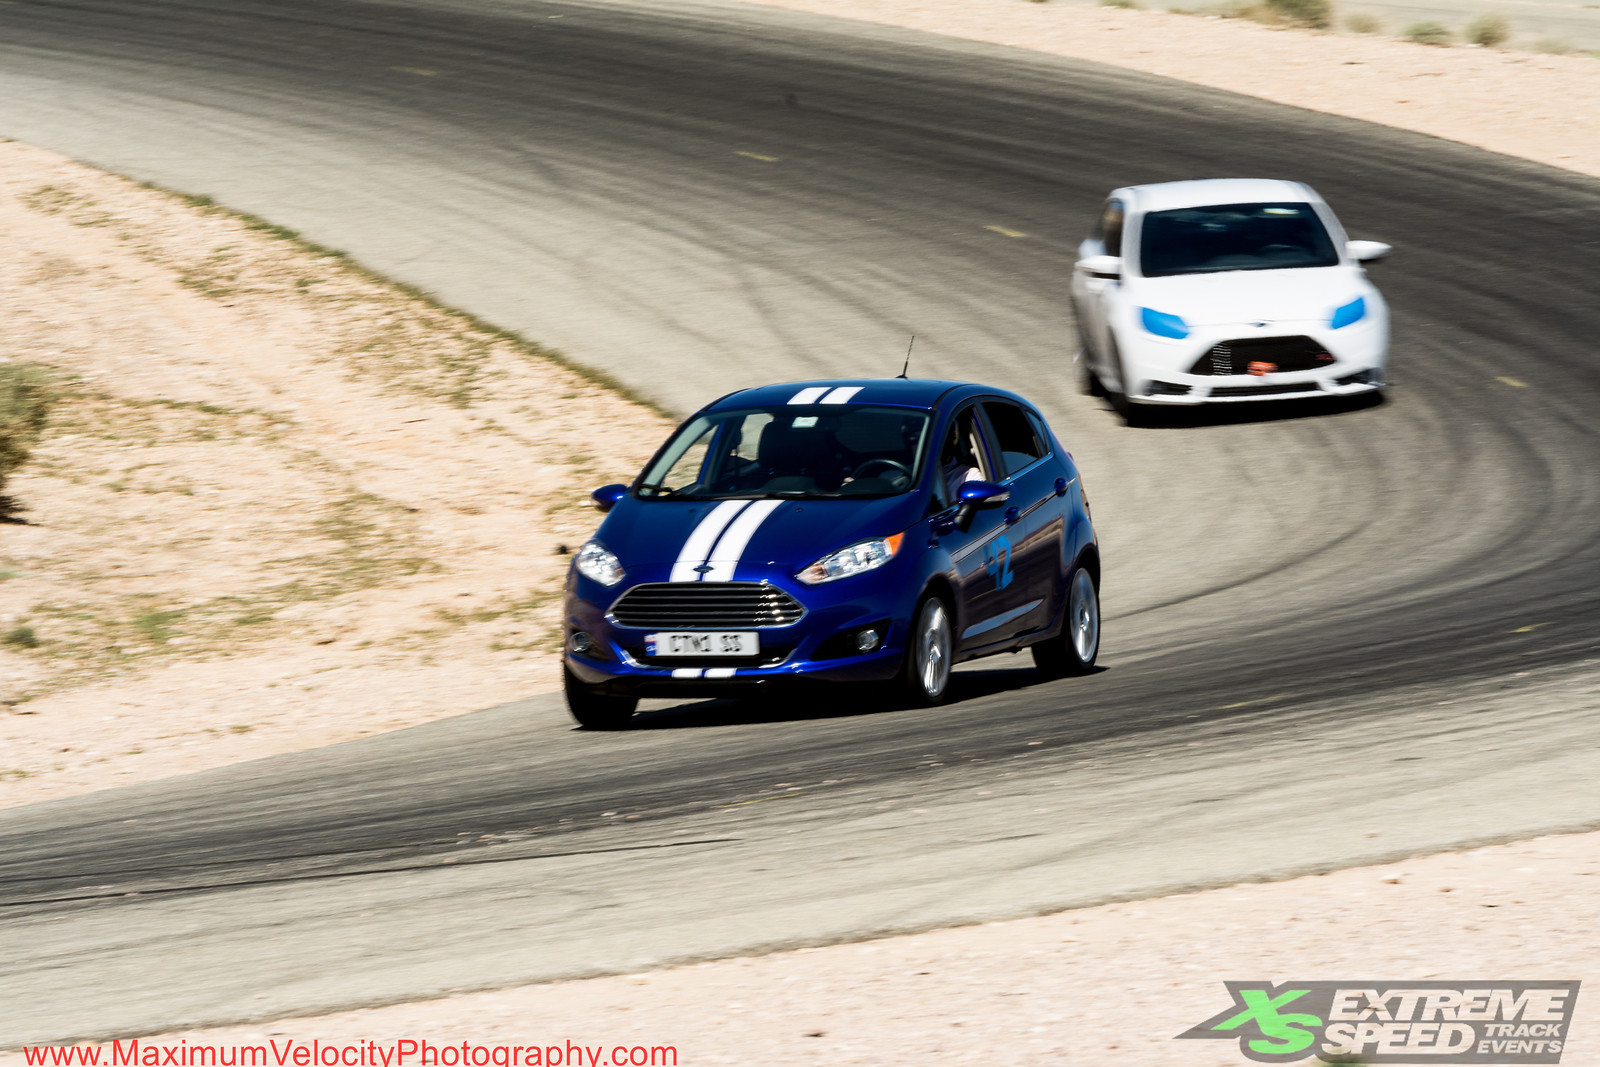 Track Day: Willow Springs Horse Thief Mile - 19044162